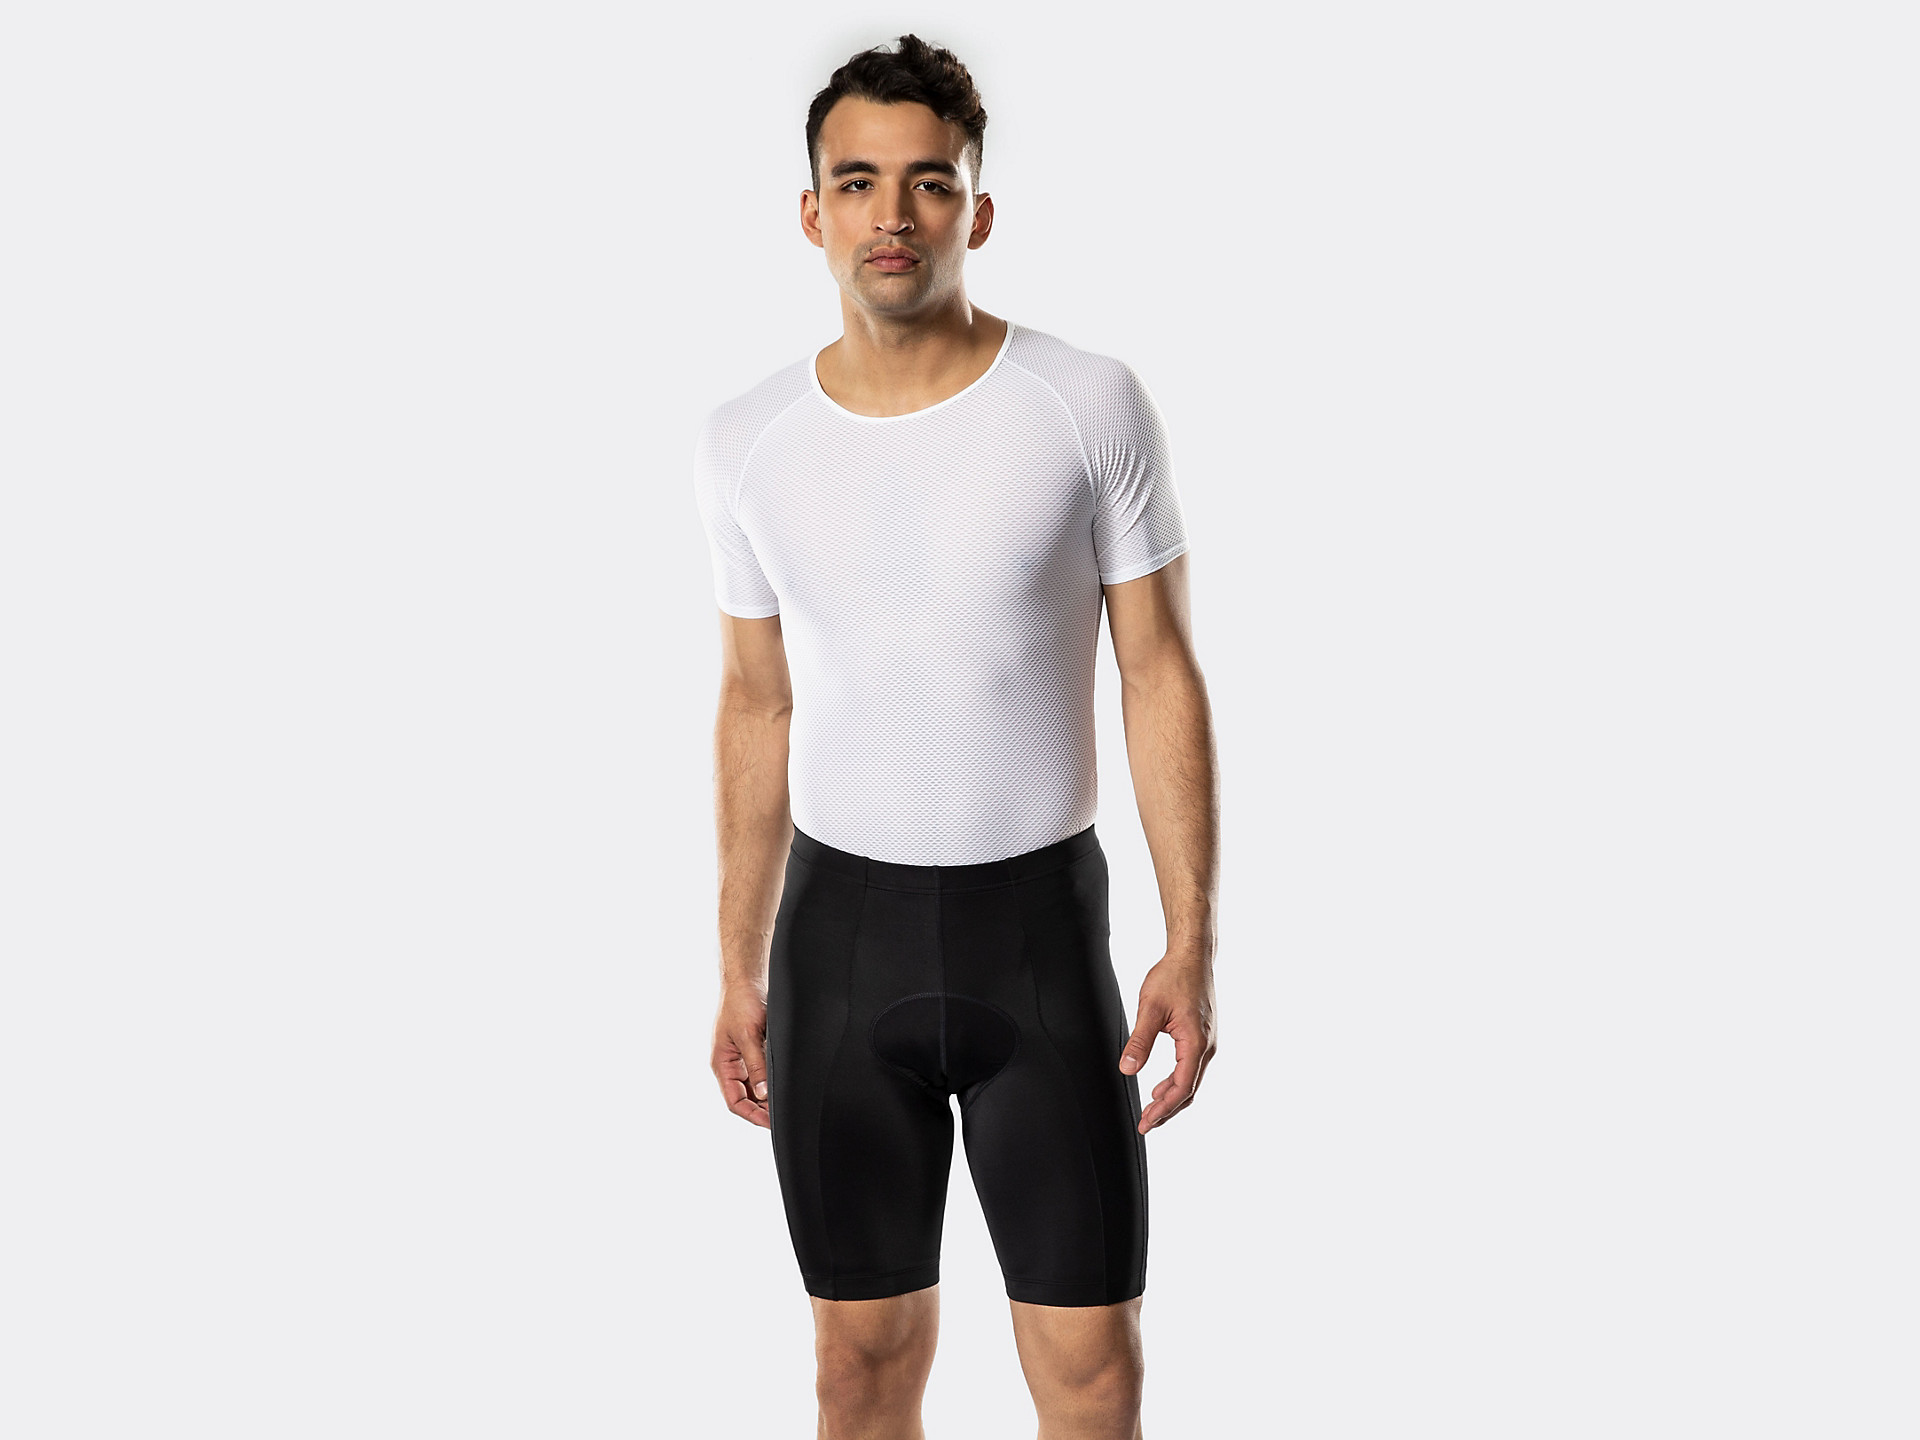 f14412188 Bontrager Solstice Cycling Short